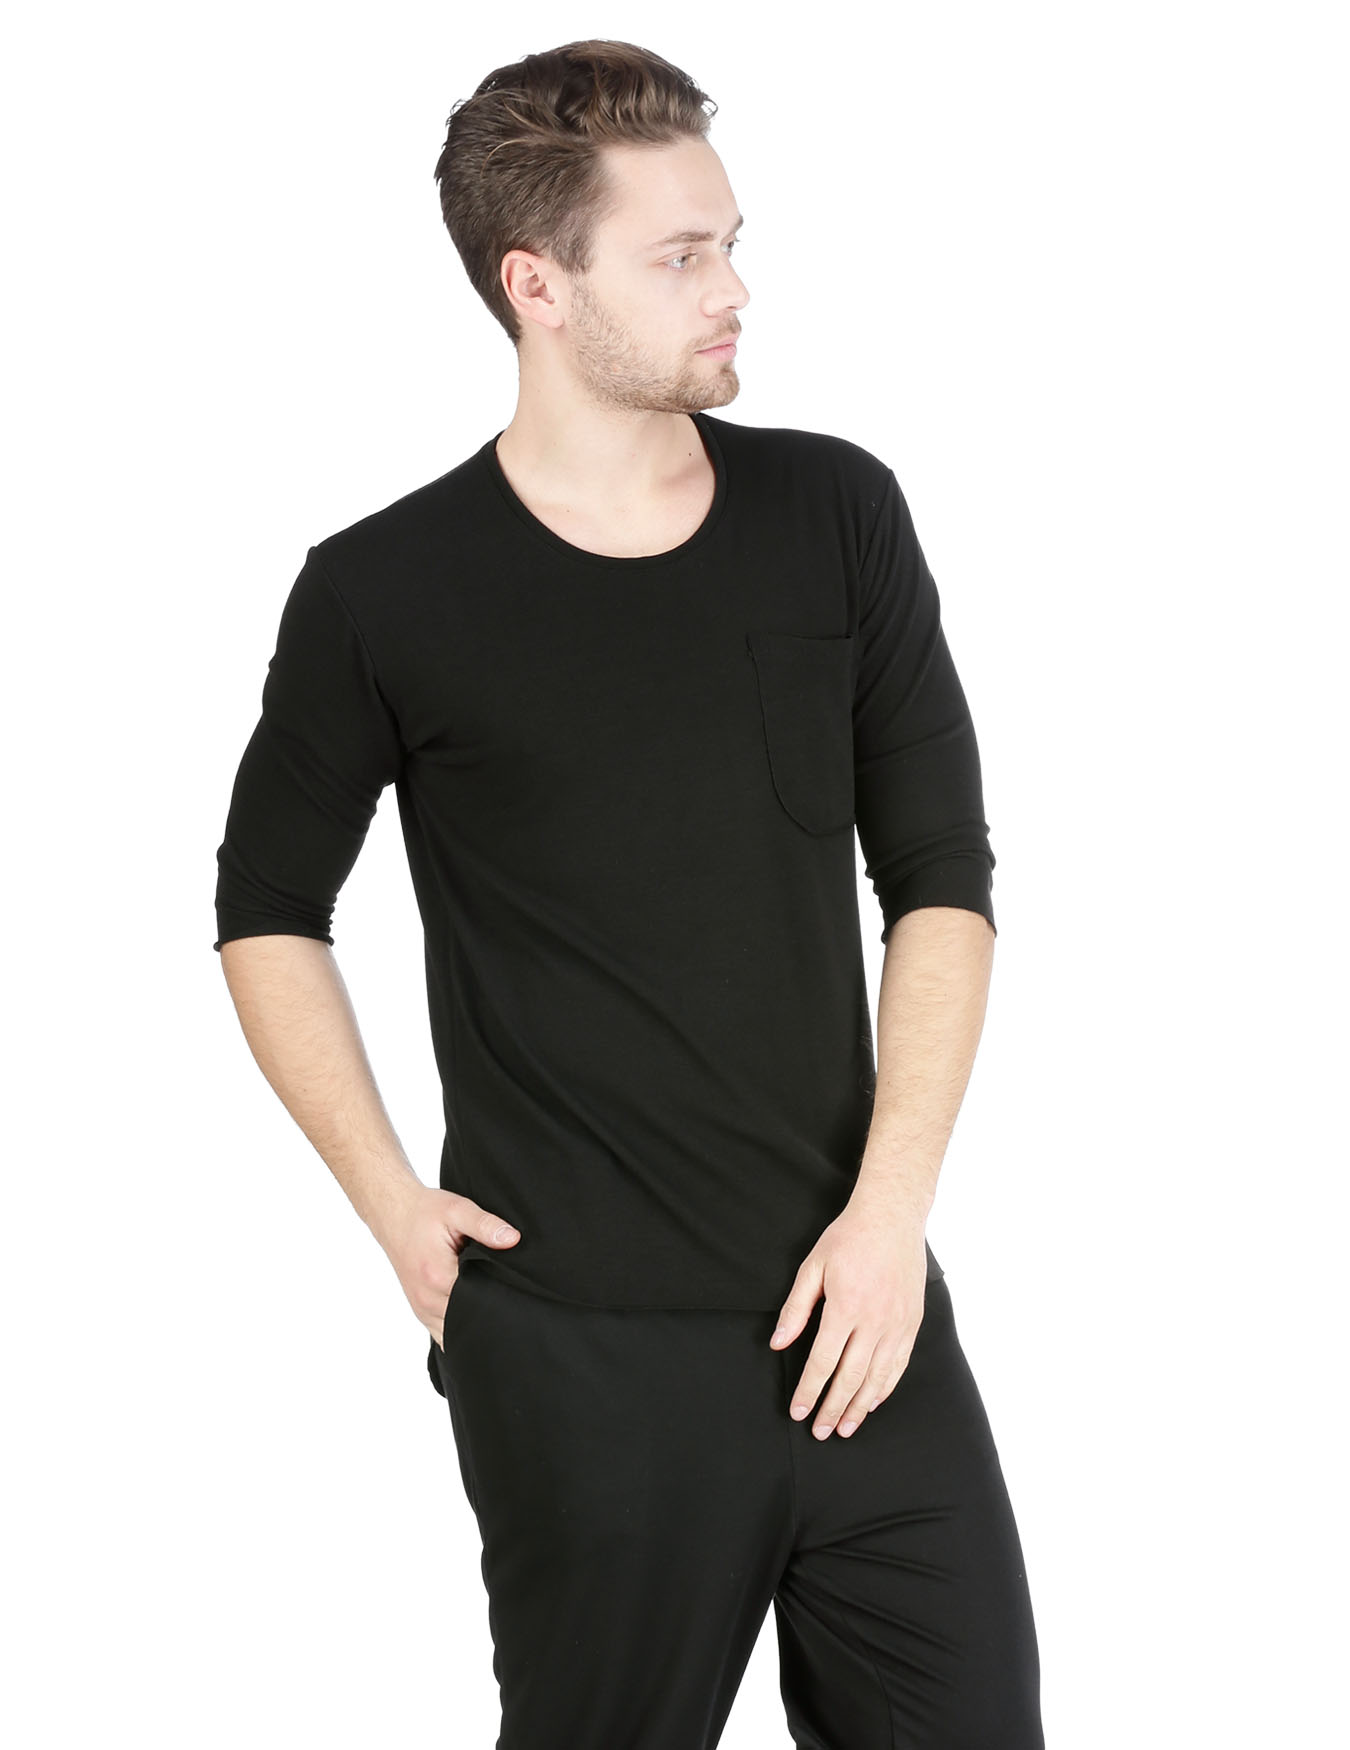 Ανδρικό T-Shirt Left Pocket - TAF - A1812 RIK